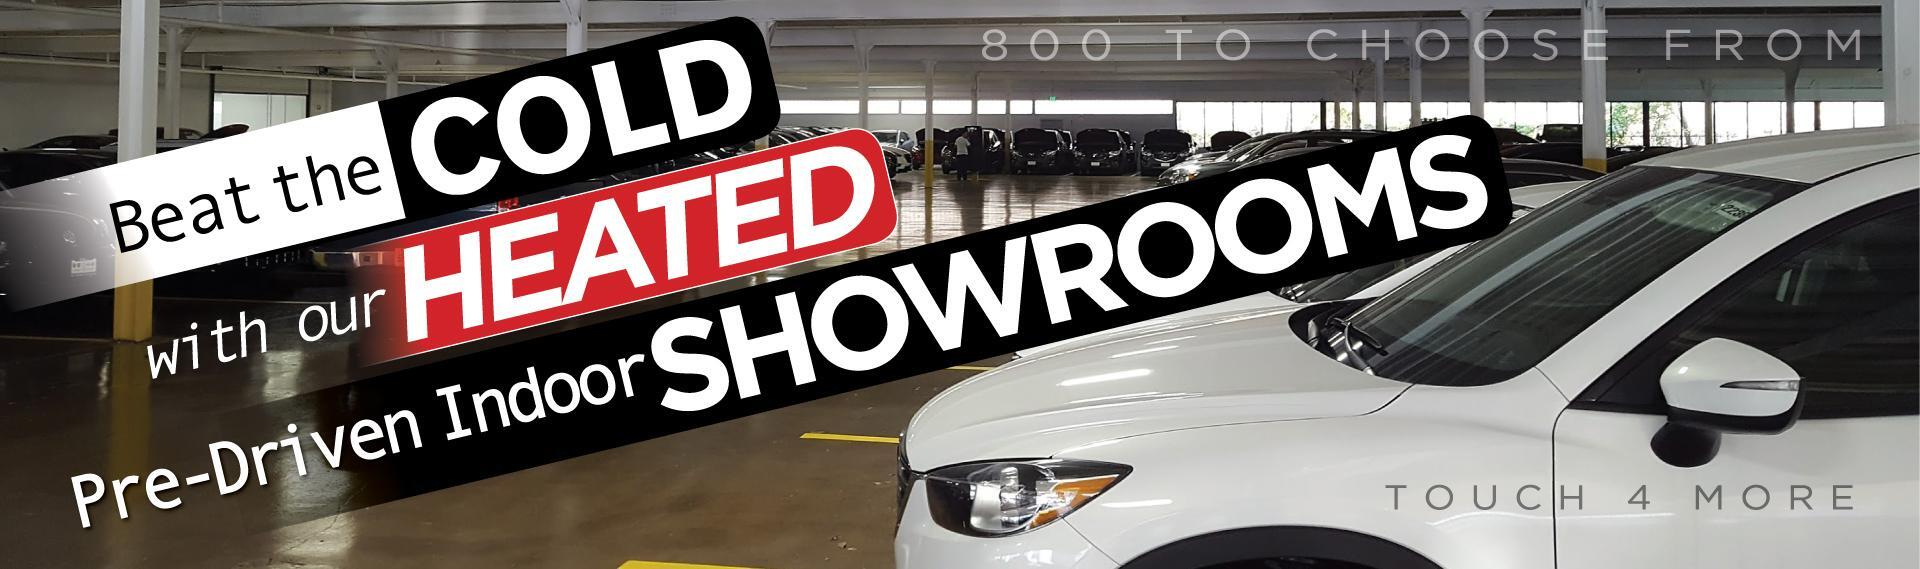 800 Pre-Owned Cars Indoors!